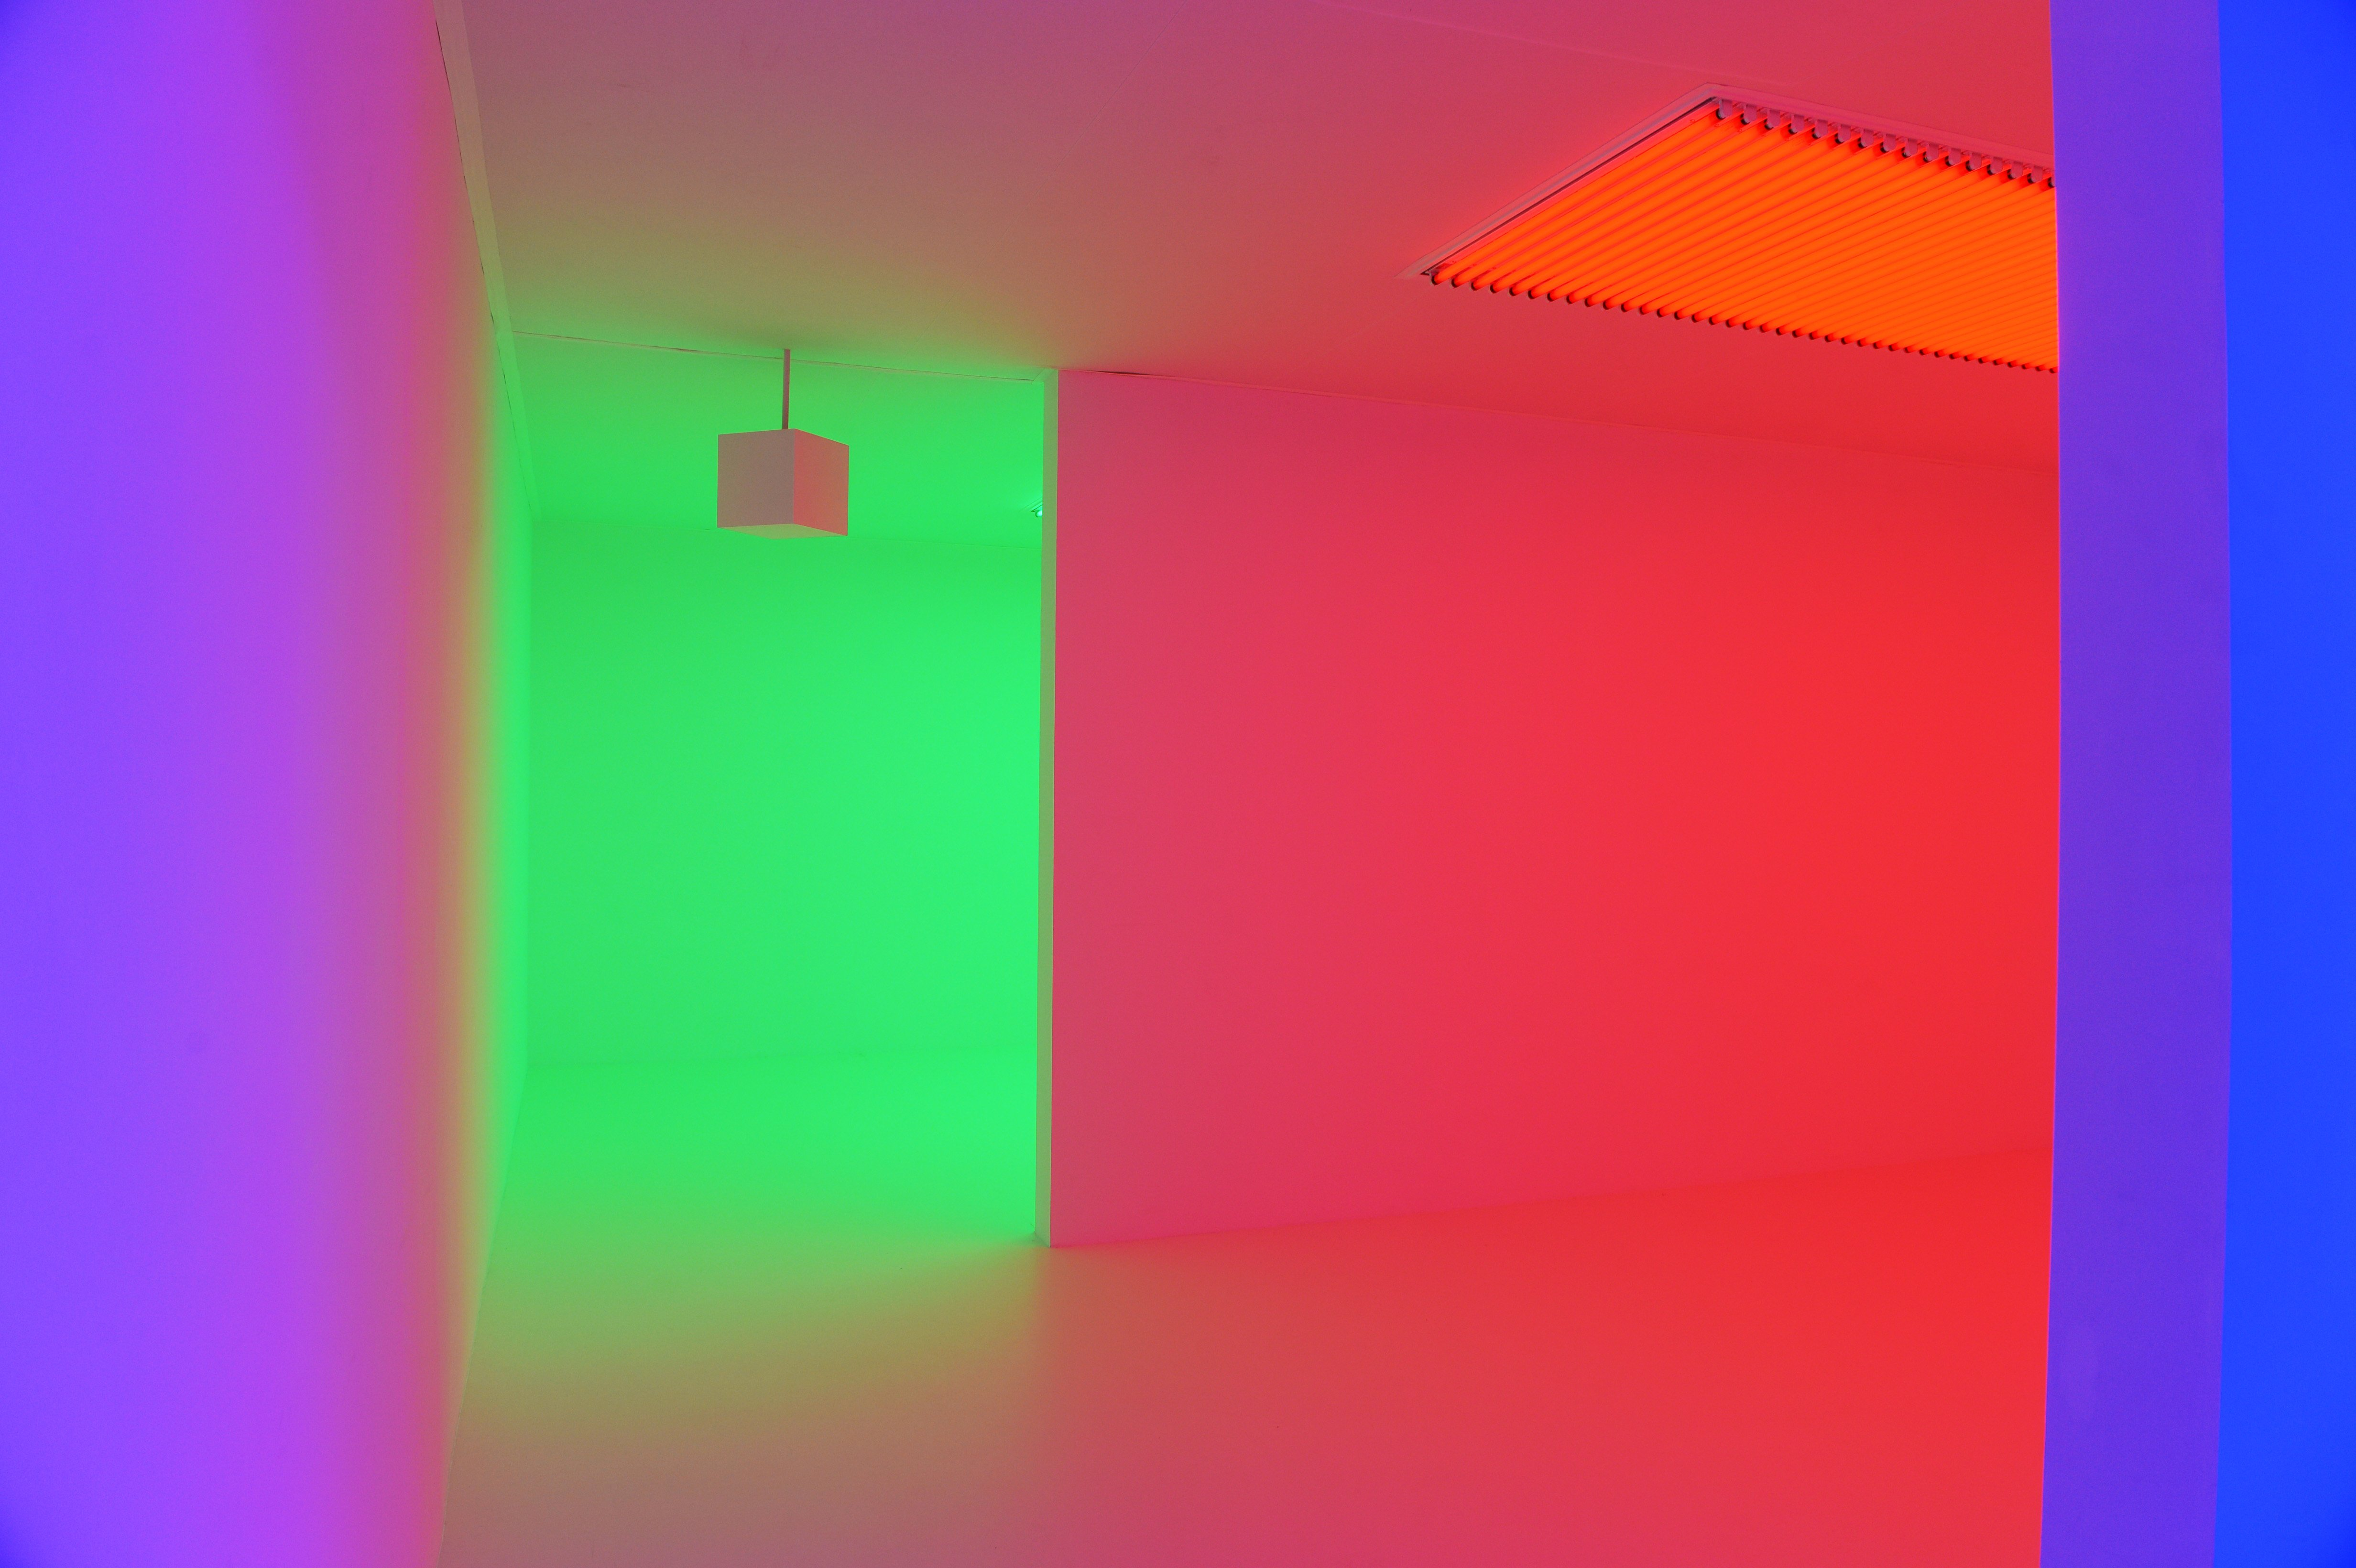 Carlos Cruz-Diez's Chromosaturation installation is displayed as part of the Light Show at the Hayward Gallery.